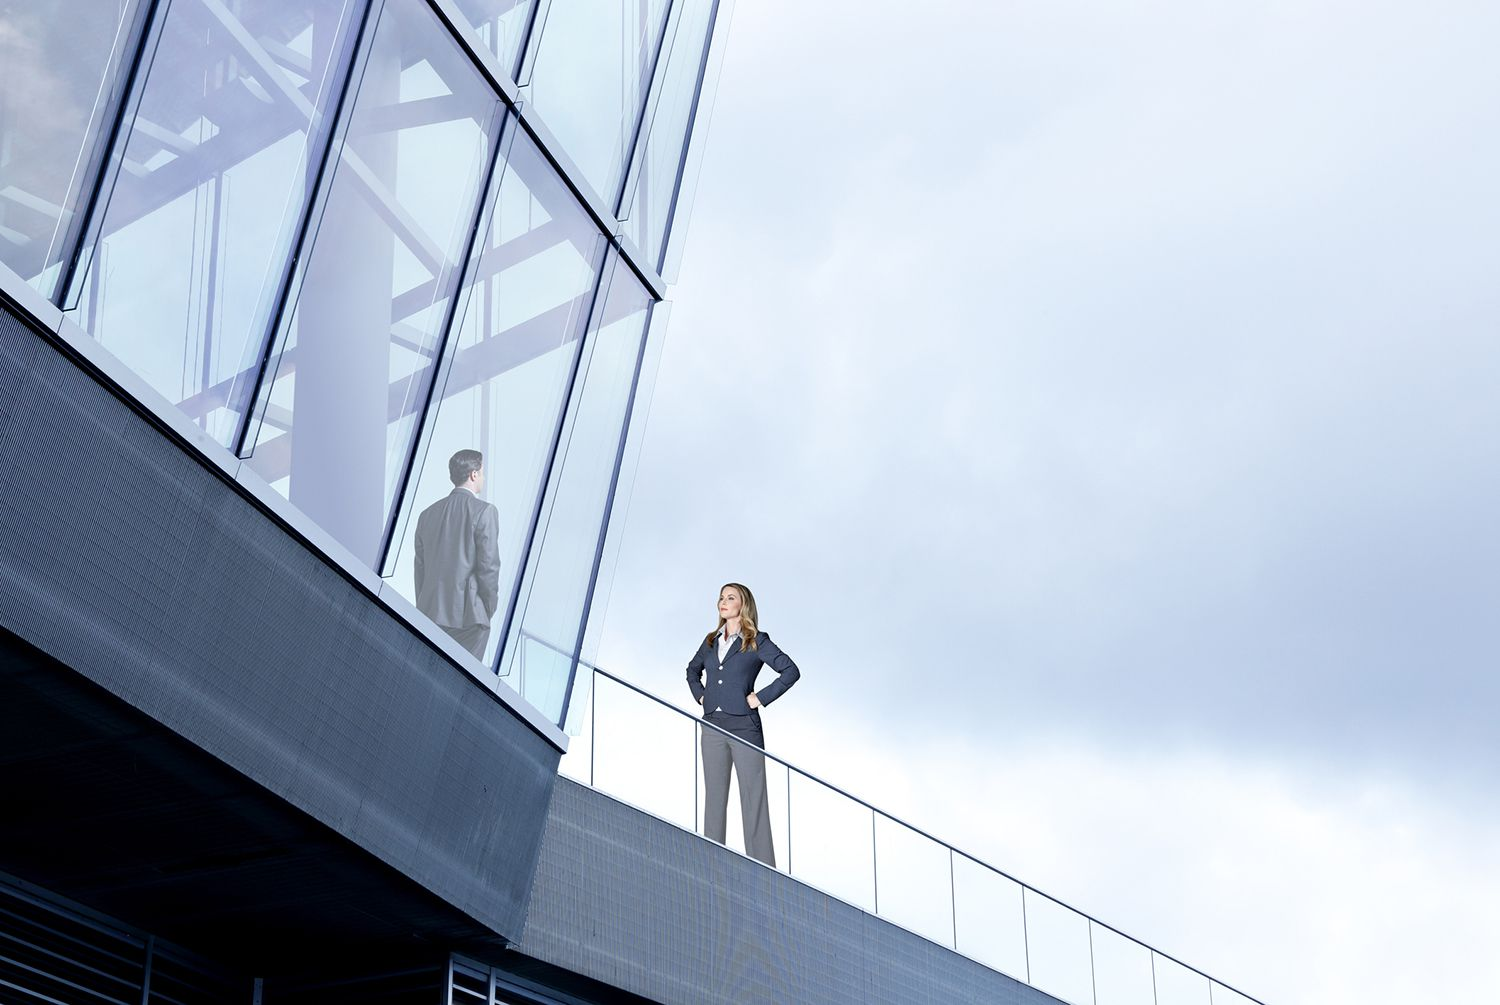 Glass Ceiling Definition